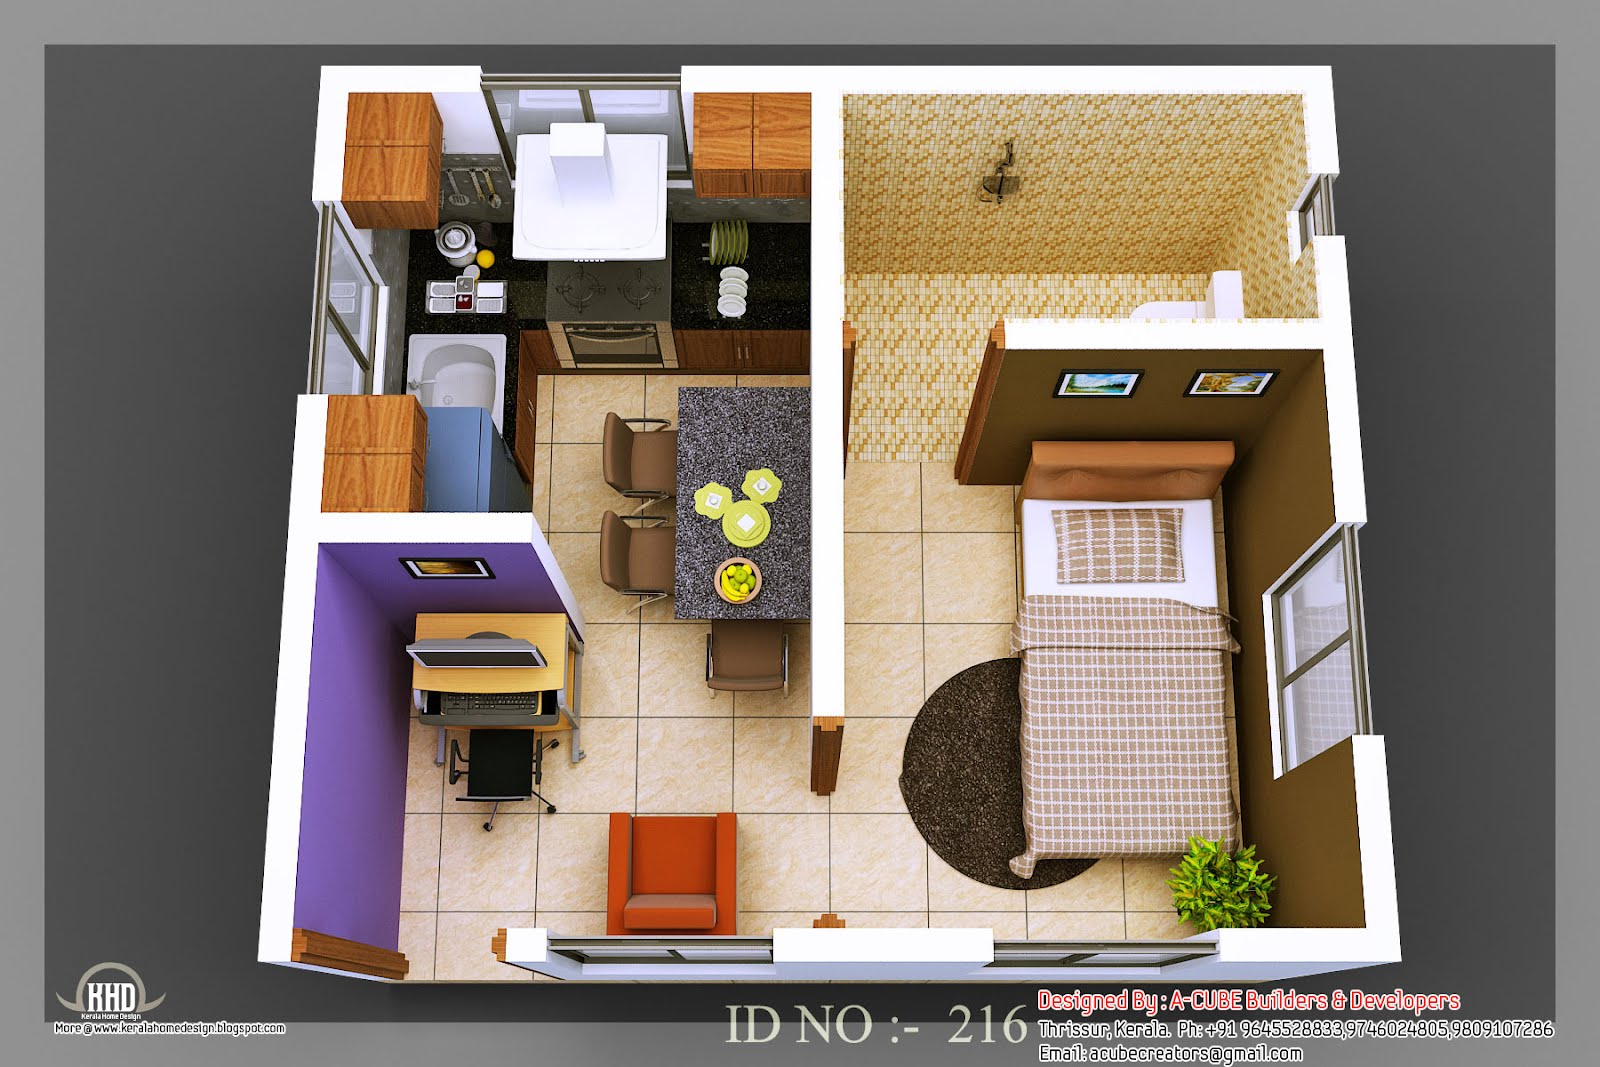 3d isometric views of small house plans kerala home for 3d view of house interior design